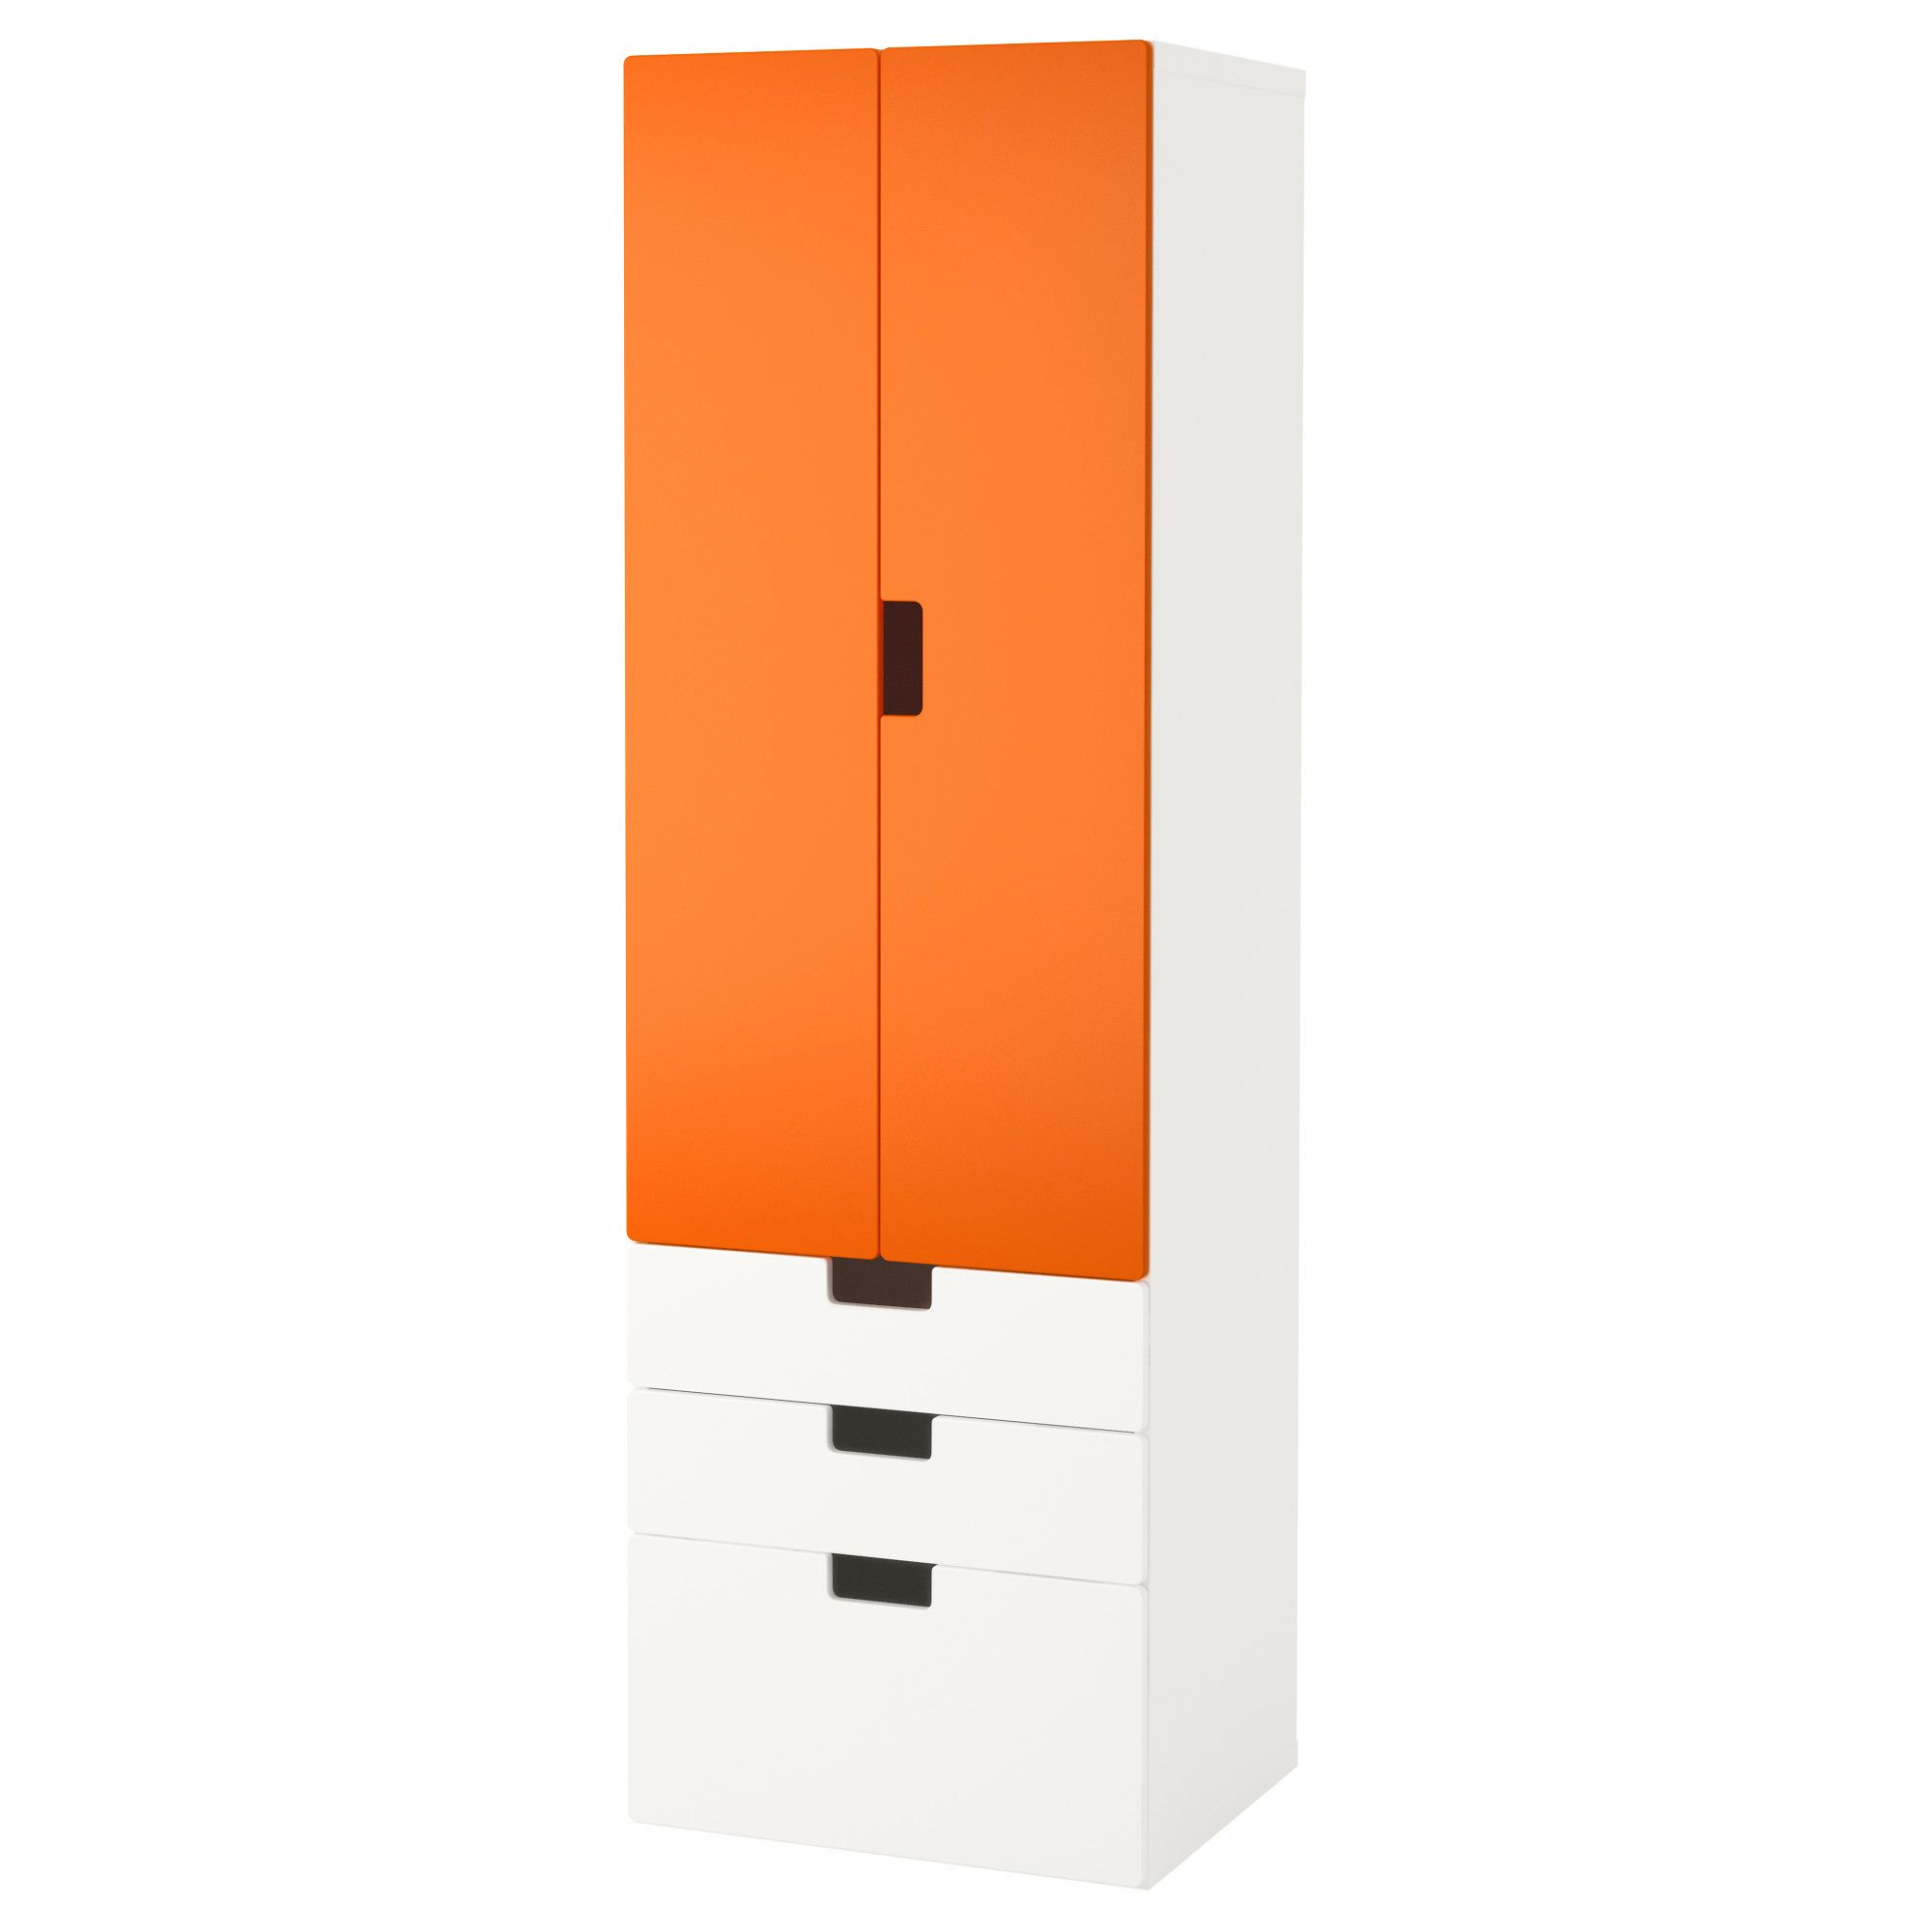 IKEA - STUVA, Storage combination w doors/drawers, white/orange, , You can keep both hanging and folded clothes in this wardrobe, since it has a clothes rail, shelf and drawers.Deep enough to hold standard-sized adult hangers.Doors with silent soft-closing damper.Stands evenly on an uneven floor; adjustable feet included.The doors and drawer fronts have rounded corners and cut-out handles with smooth edges.